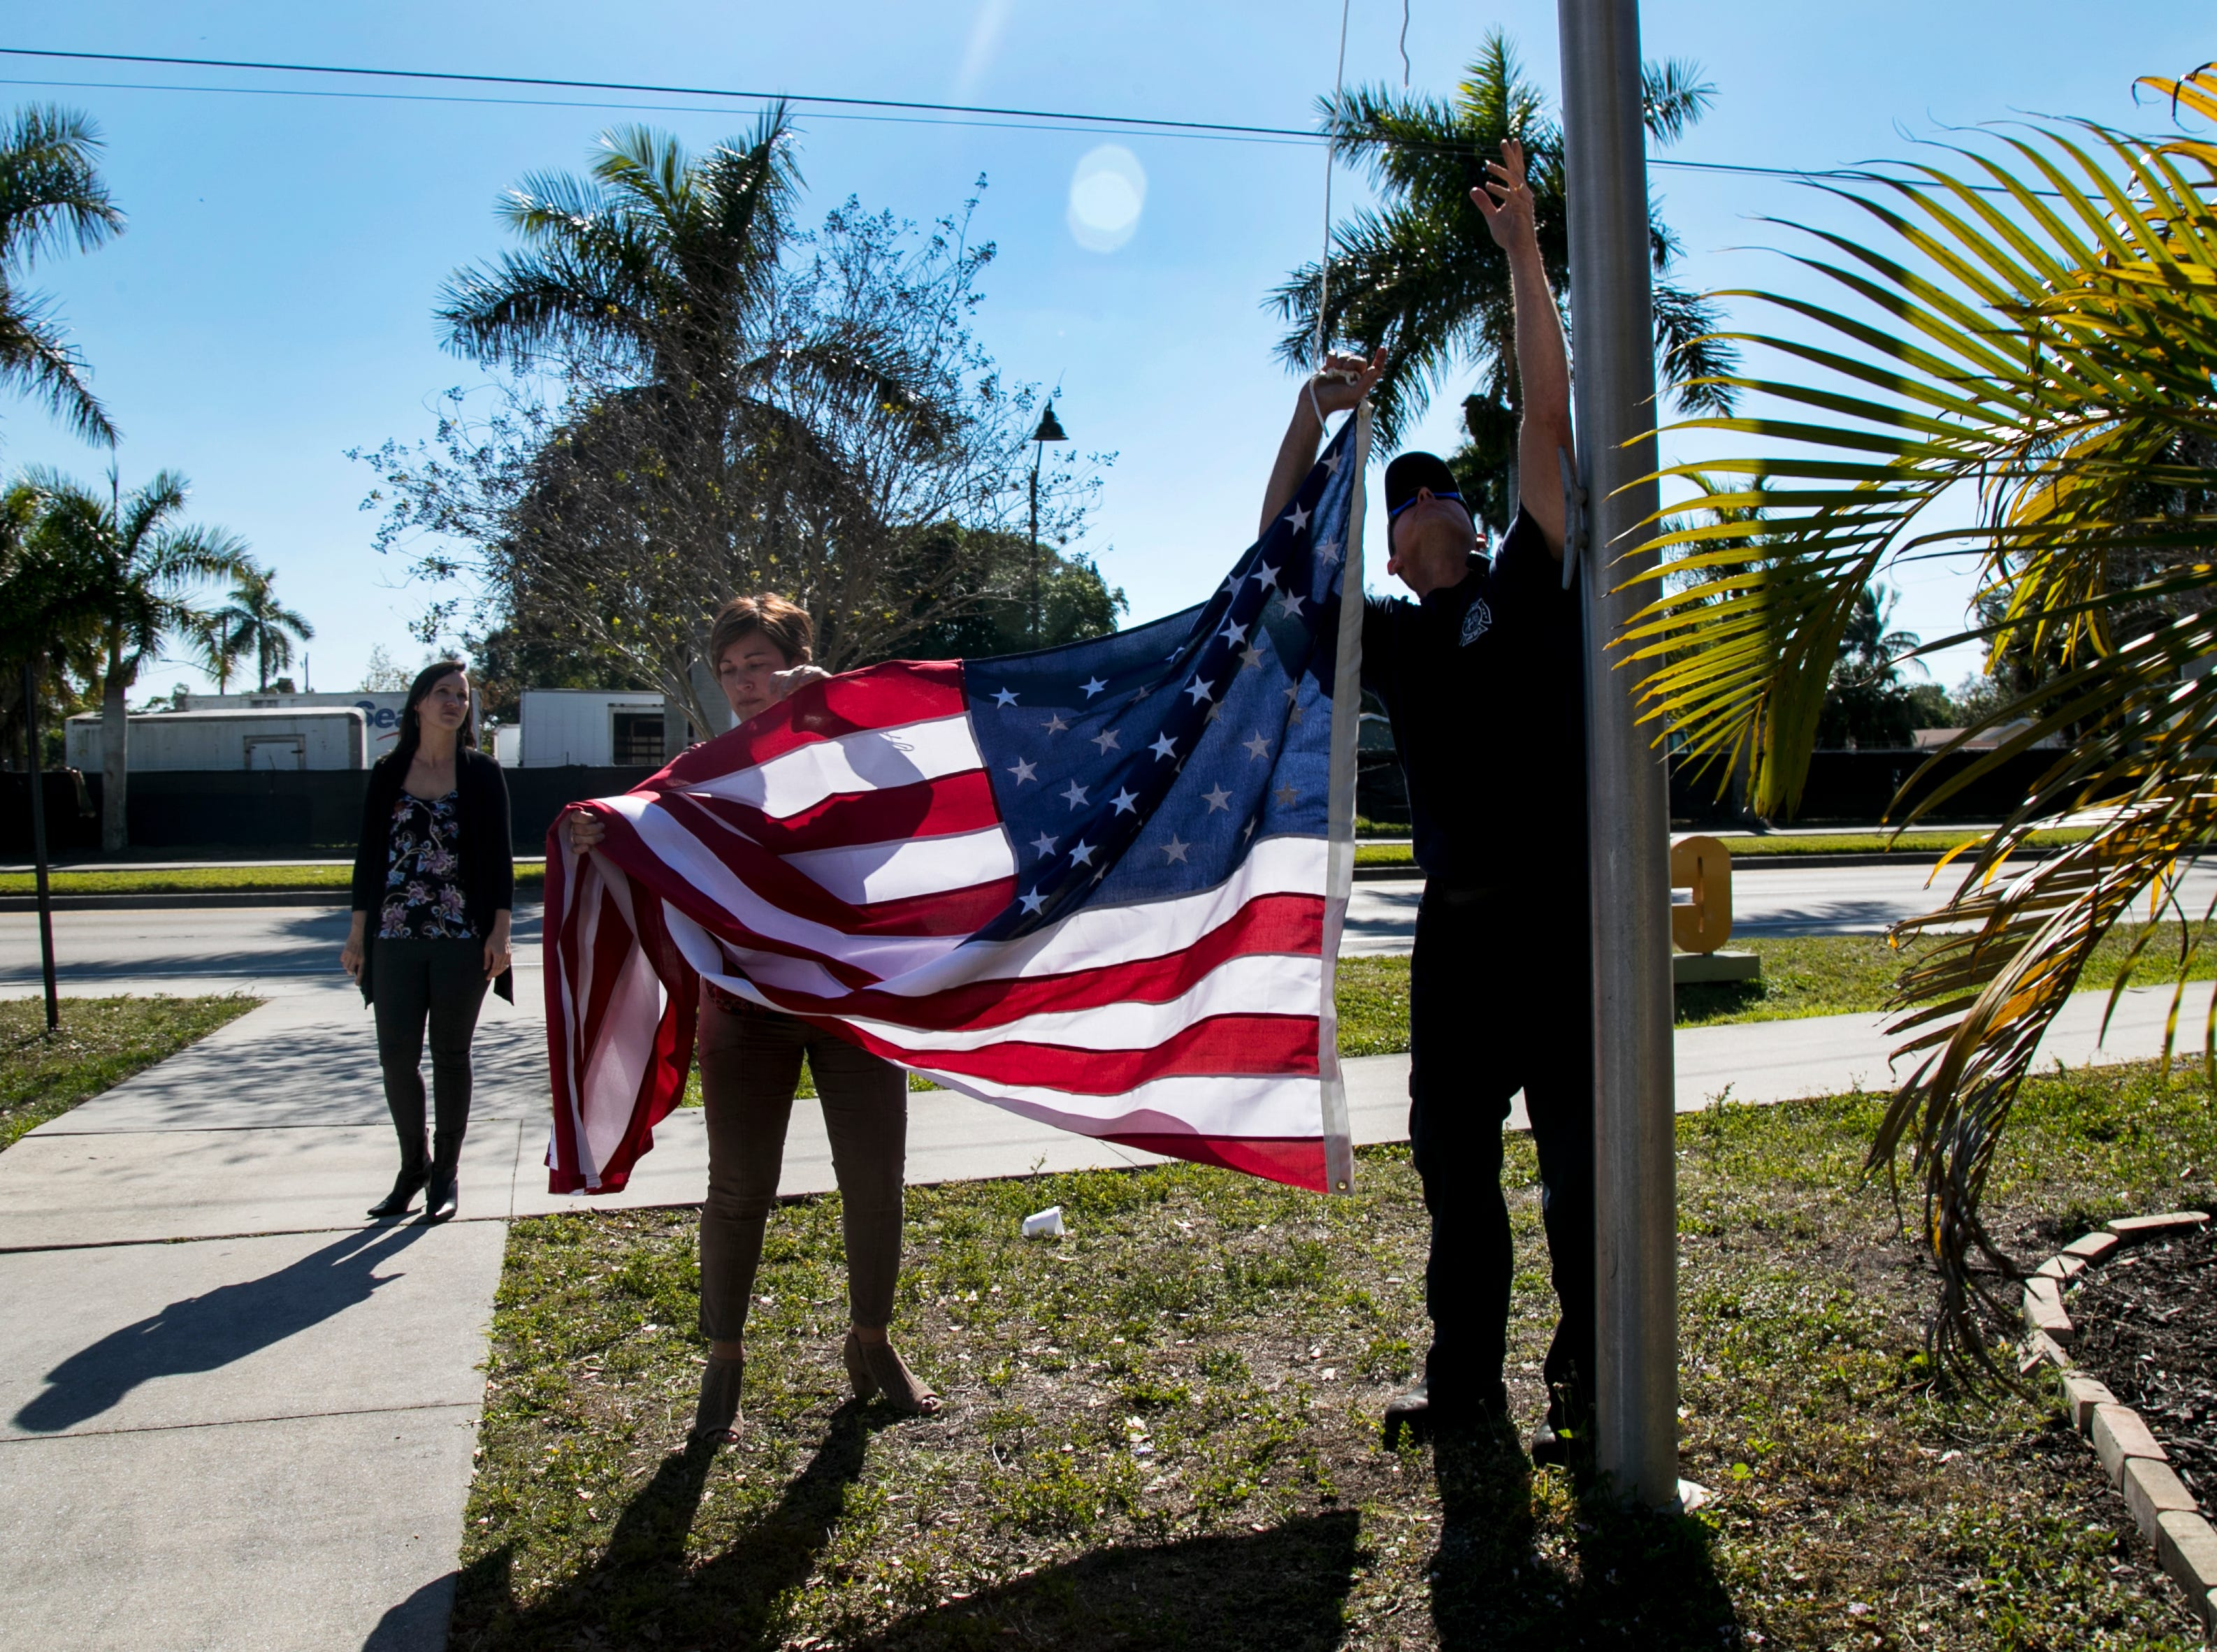 """Community Cooperative CEO Tracey Galloway, center, and Fort Myers firefighter Sean Shipman hang the new American flag at Community Cooperative on Tuesday afternoon in Fort Myers. They discovered their old flag was stolen - rope and all - on December 31, 2018, when they went to raise it back to full mast after the mourning period for former President George H.W. Bush. Galloway asked for help in hanging the new flag, and the Fort Myers Fire Department answered her call for help. They brought a ladder truck to replace the rope and hang the new flag. """"We work with a lot of veterans, so it's important for us to have a flag. We're glad to have it back up,"""" Galloway said."""